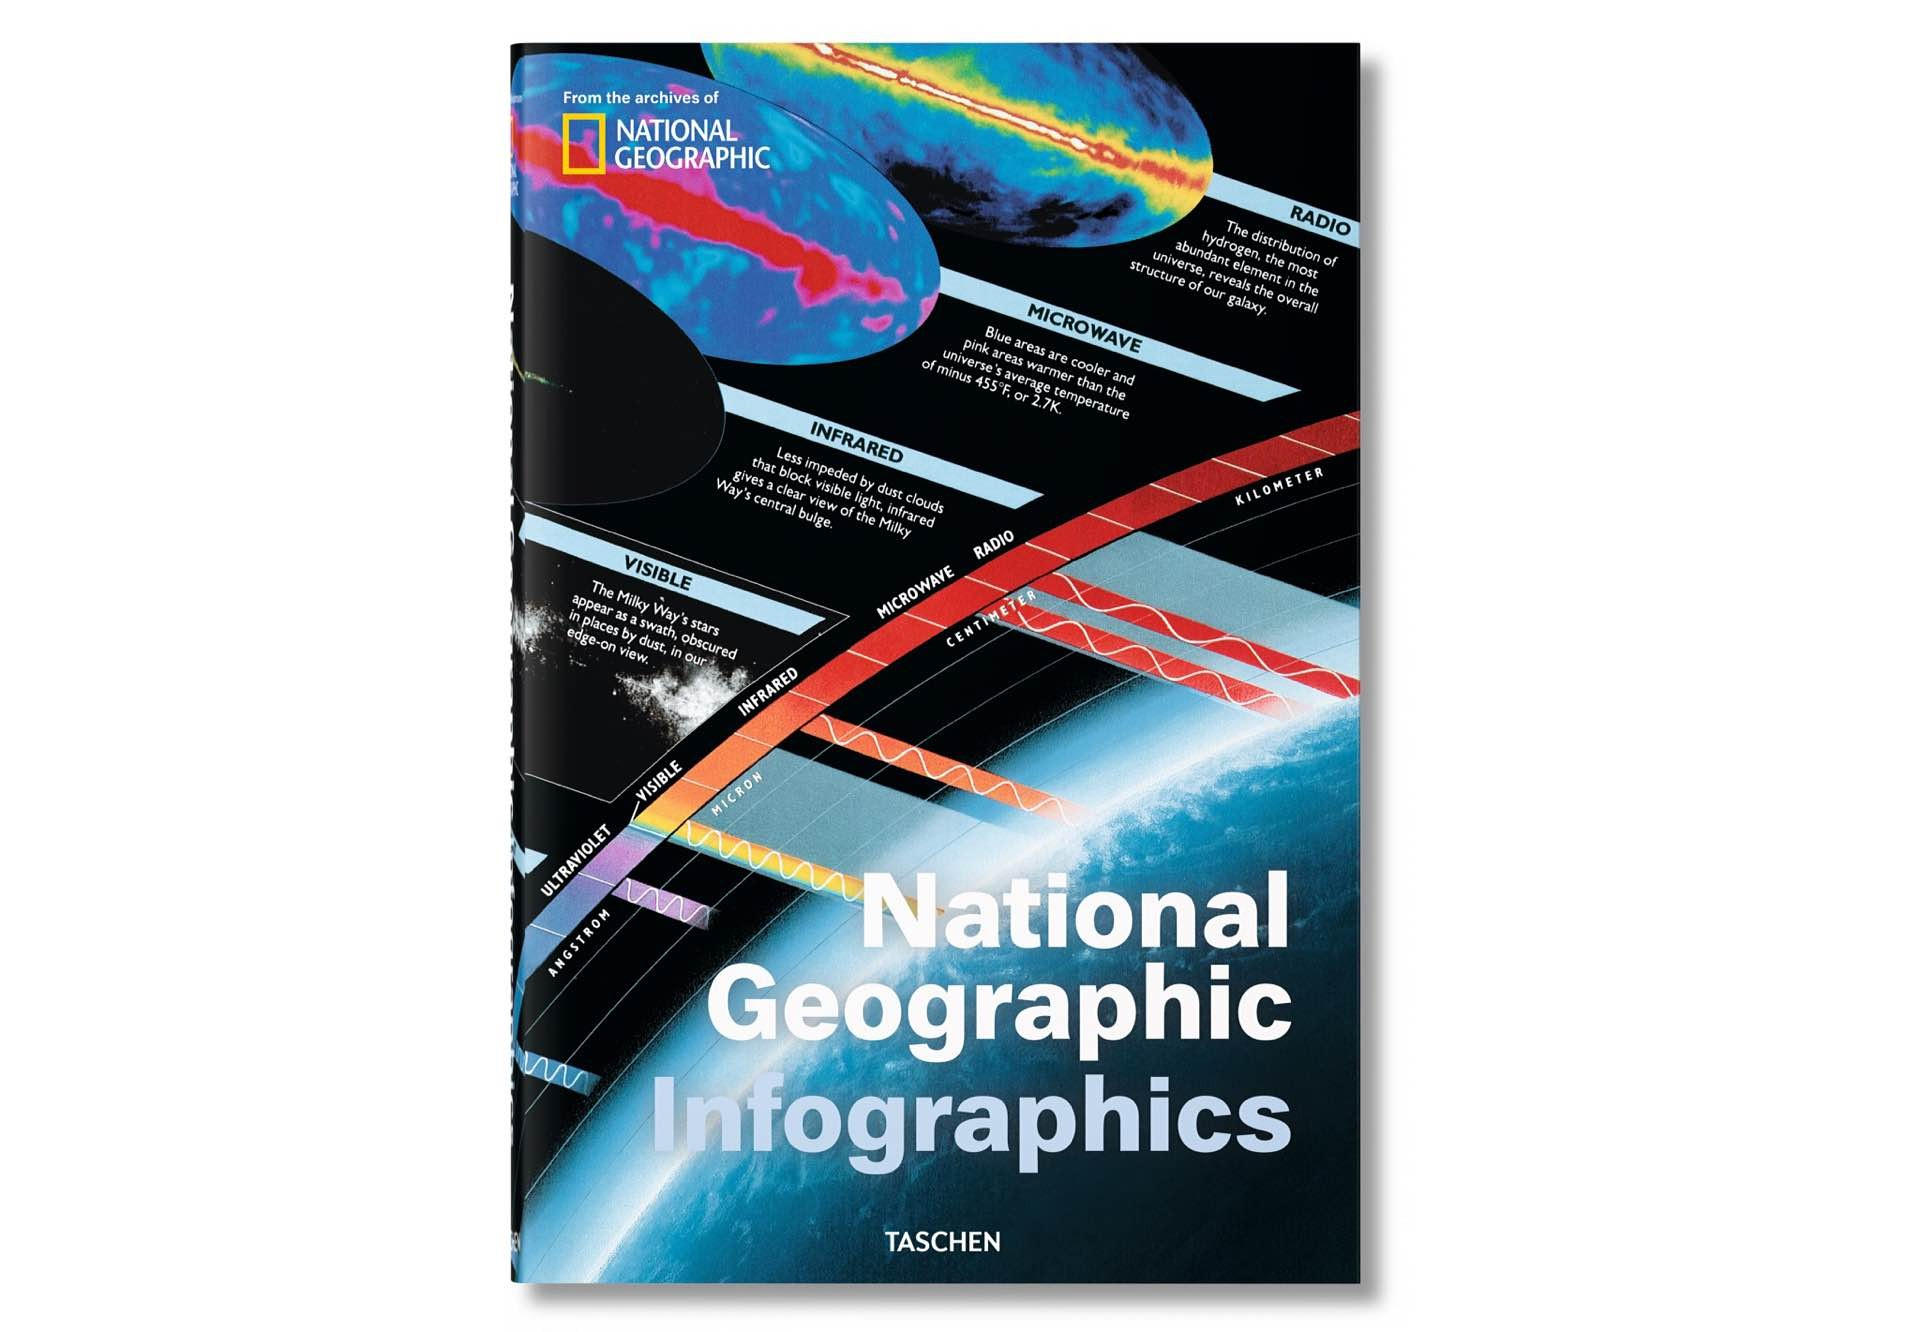 National Georgraphic Infographics Book